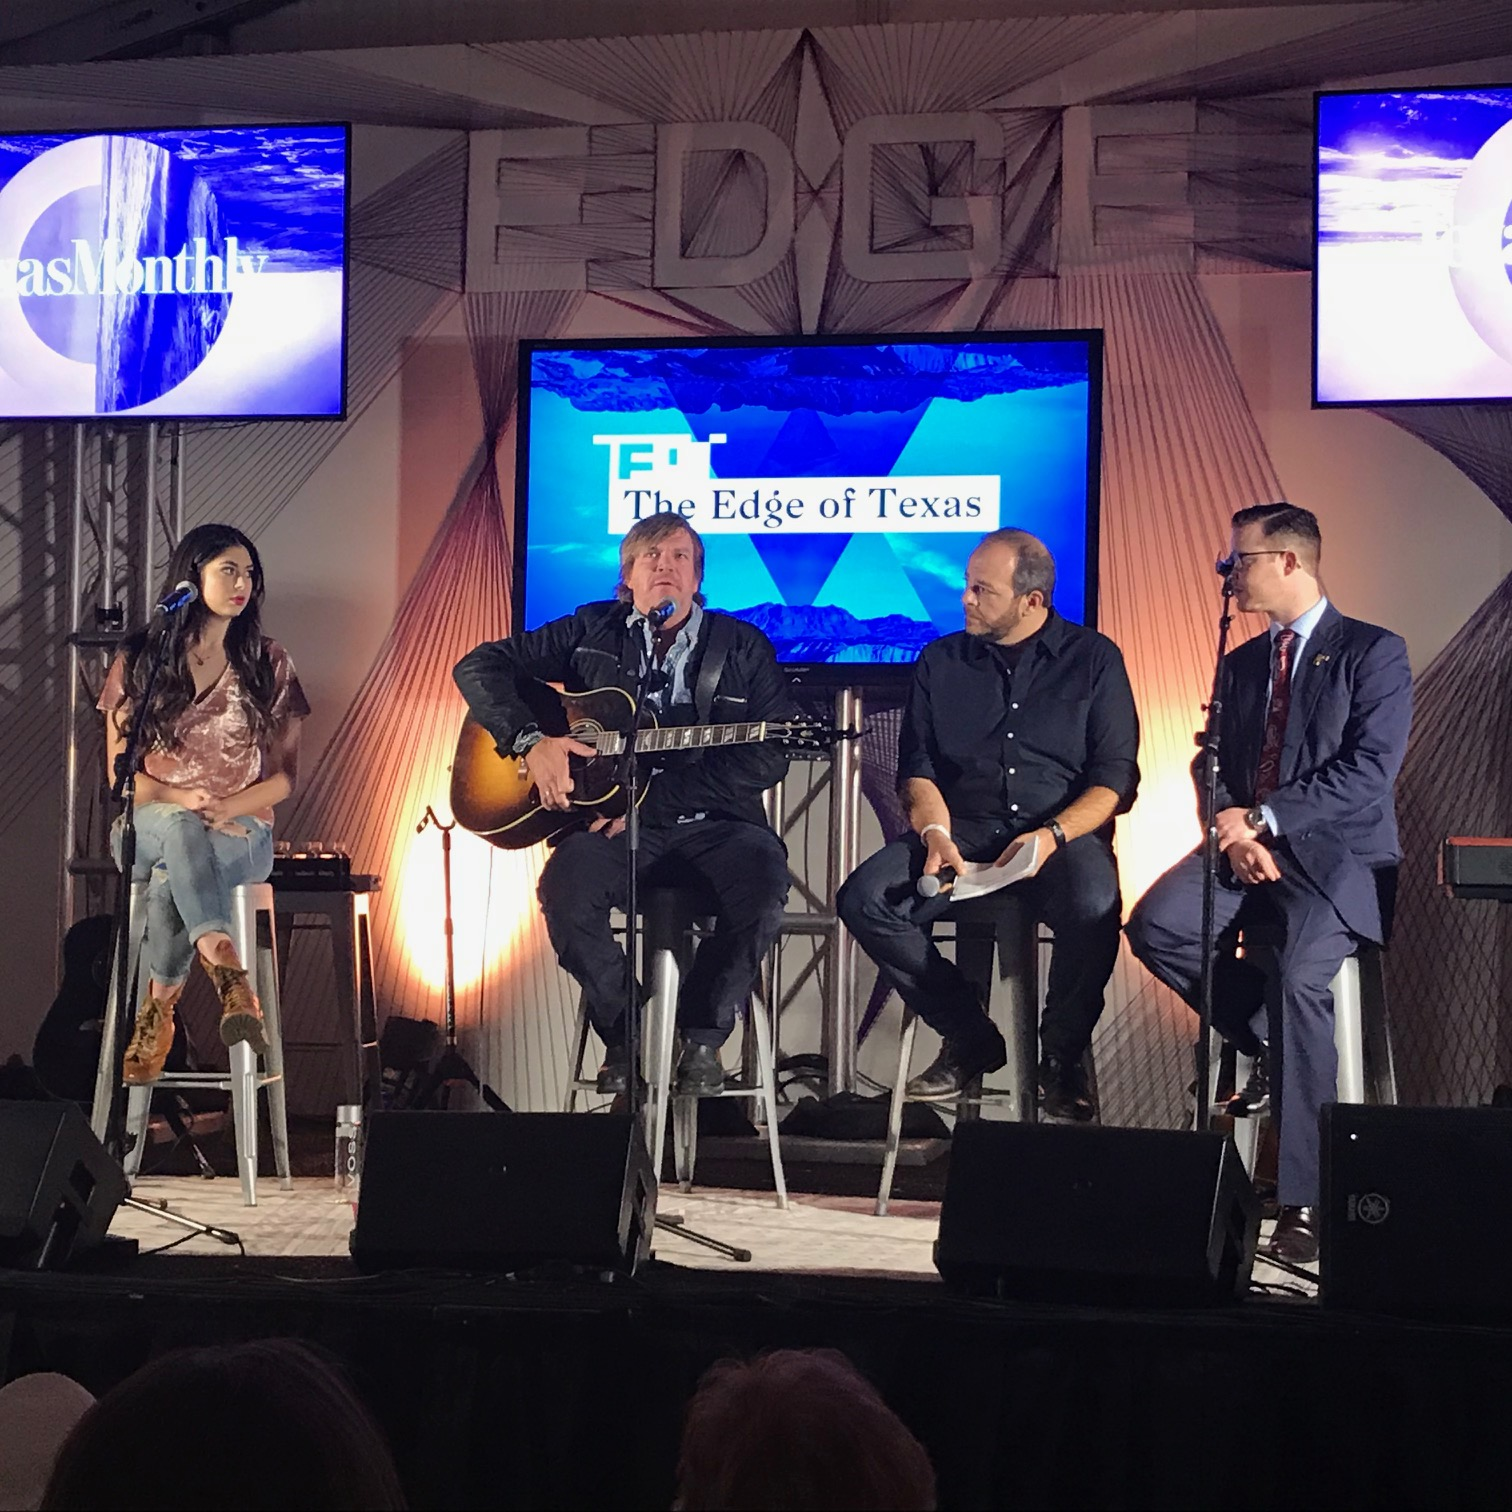 Mignon, Jack ingram, Andy langer, and Jefferson Clay on stage at the Edge of Texas event in dallas.